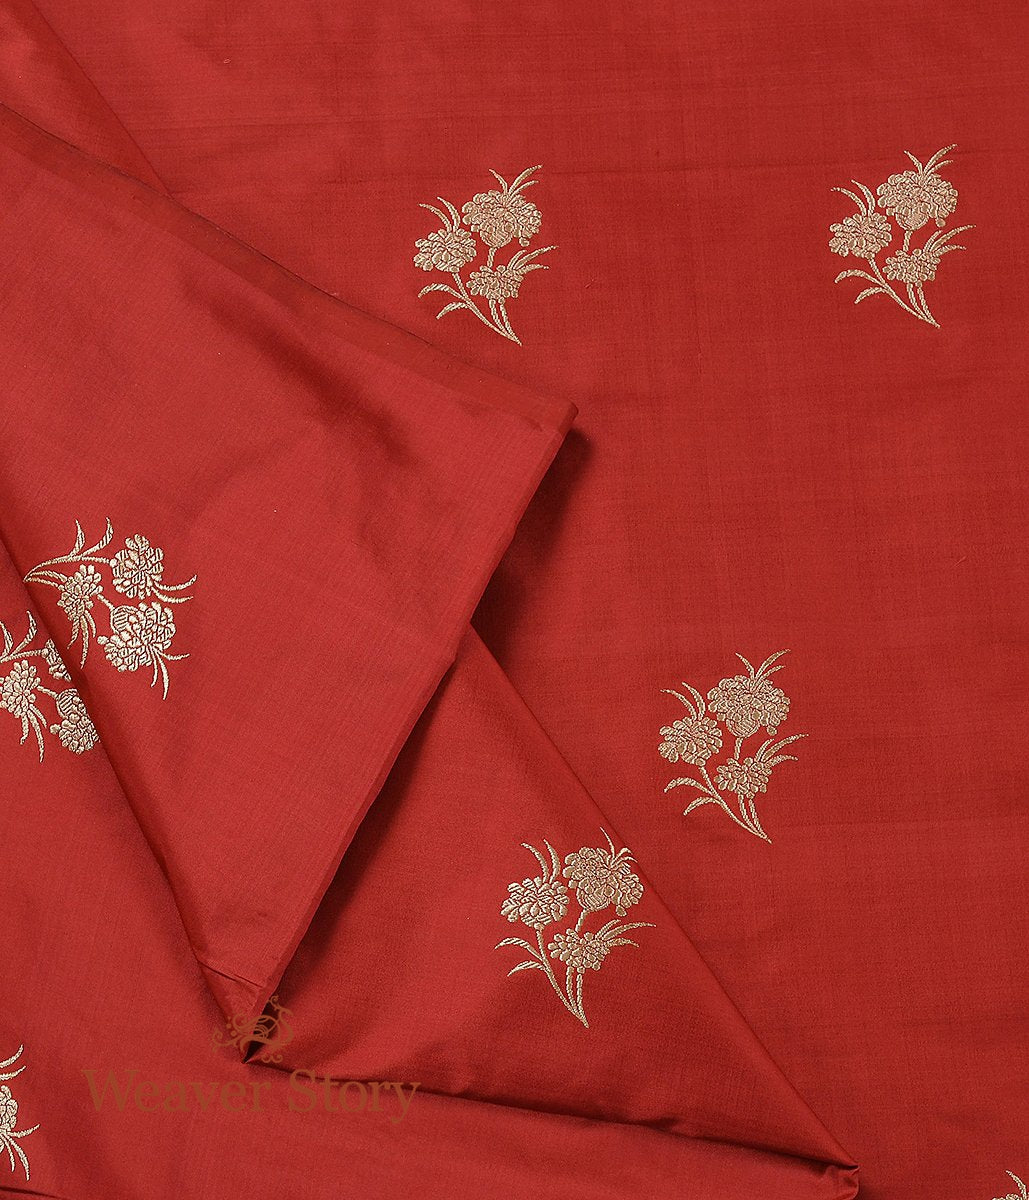 Handwoven Brick Red Kadhwa Boota Fabric